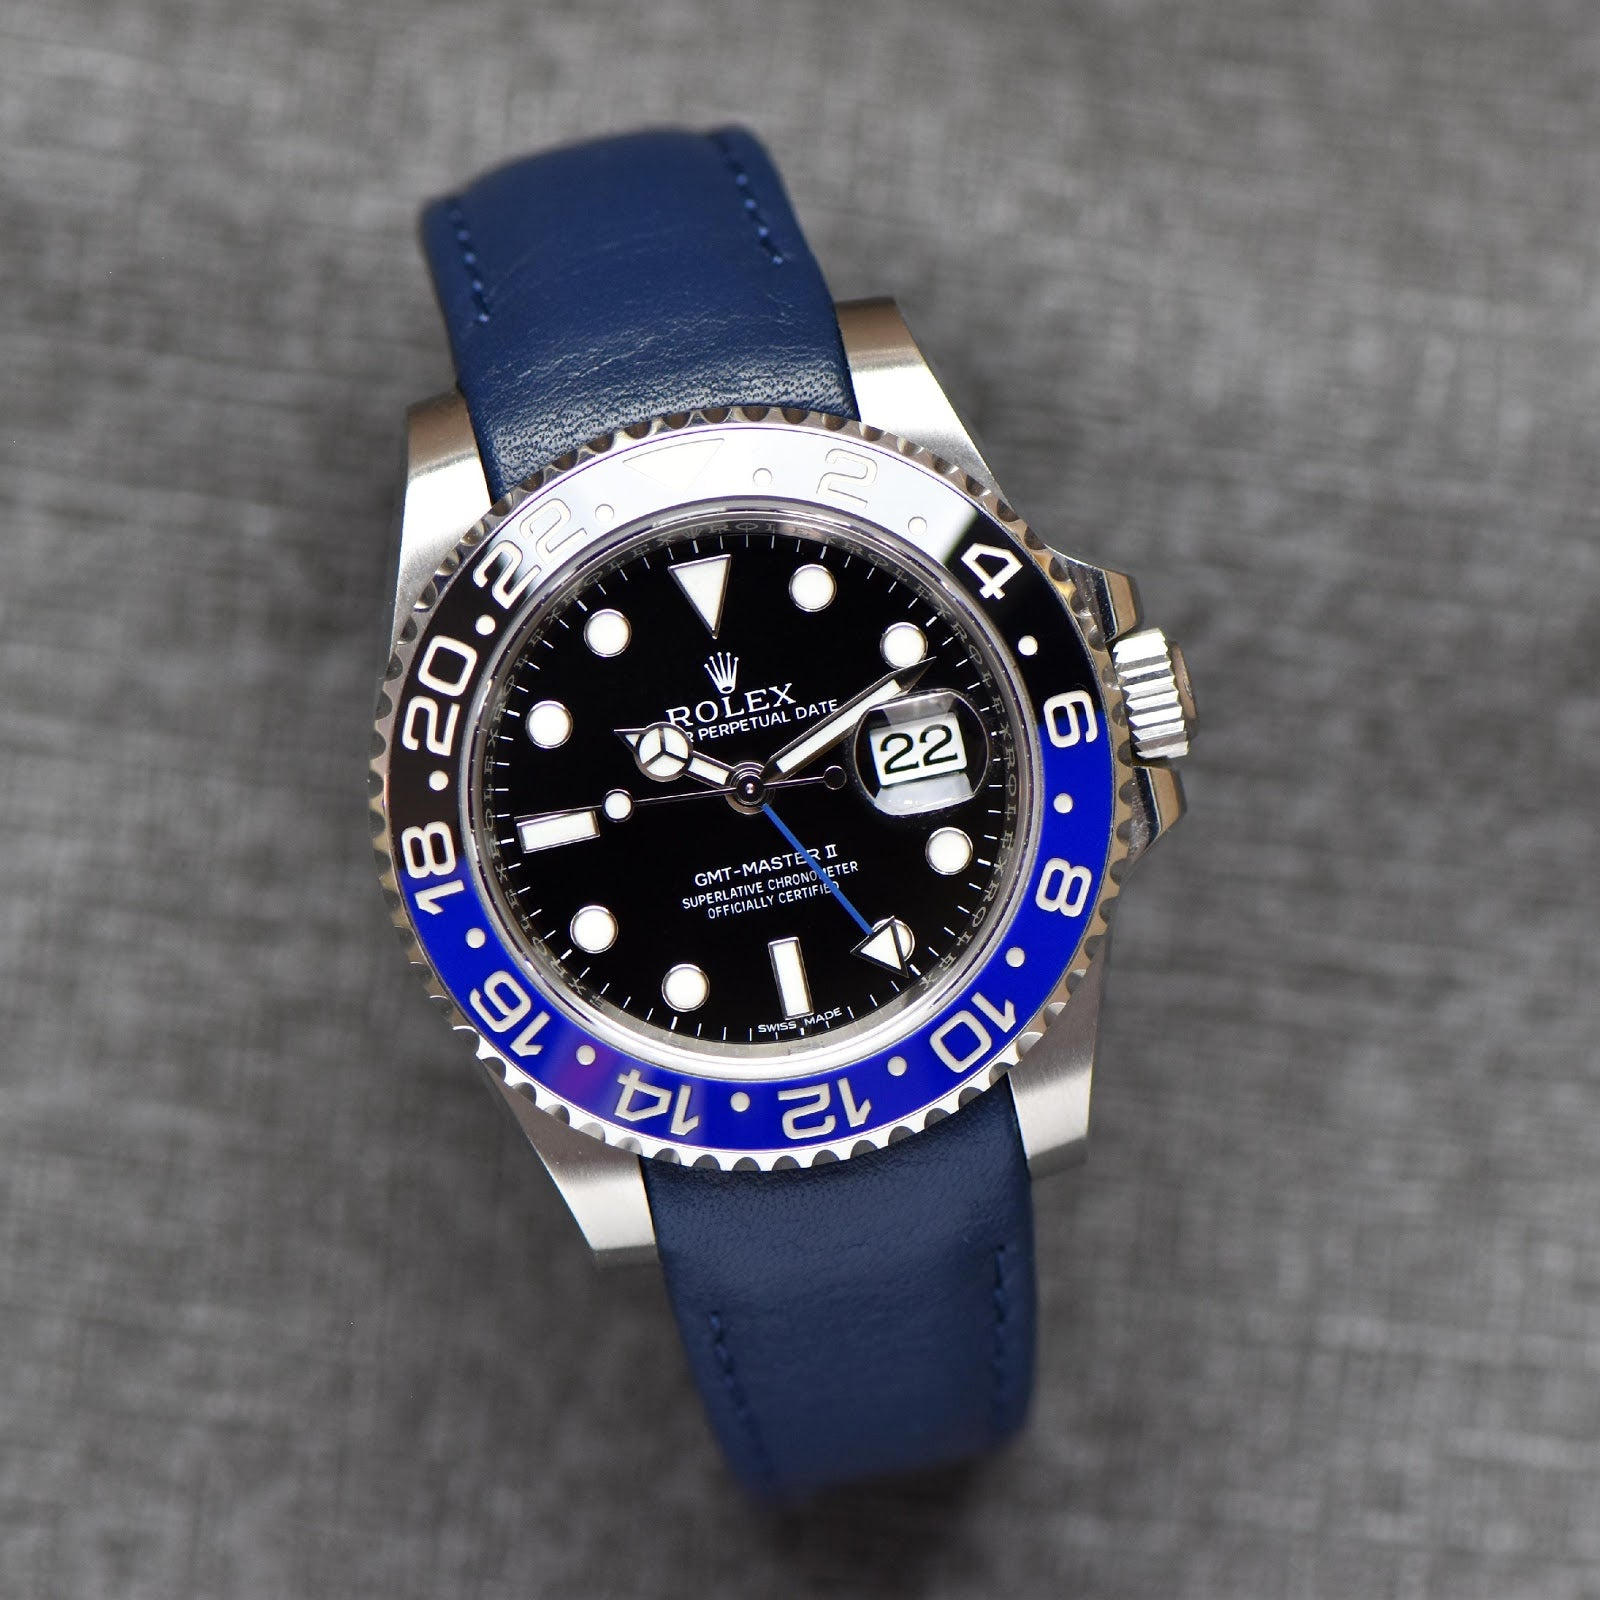 blue leather strap for rolex gmt master II blnr